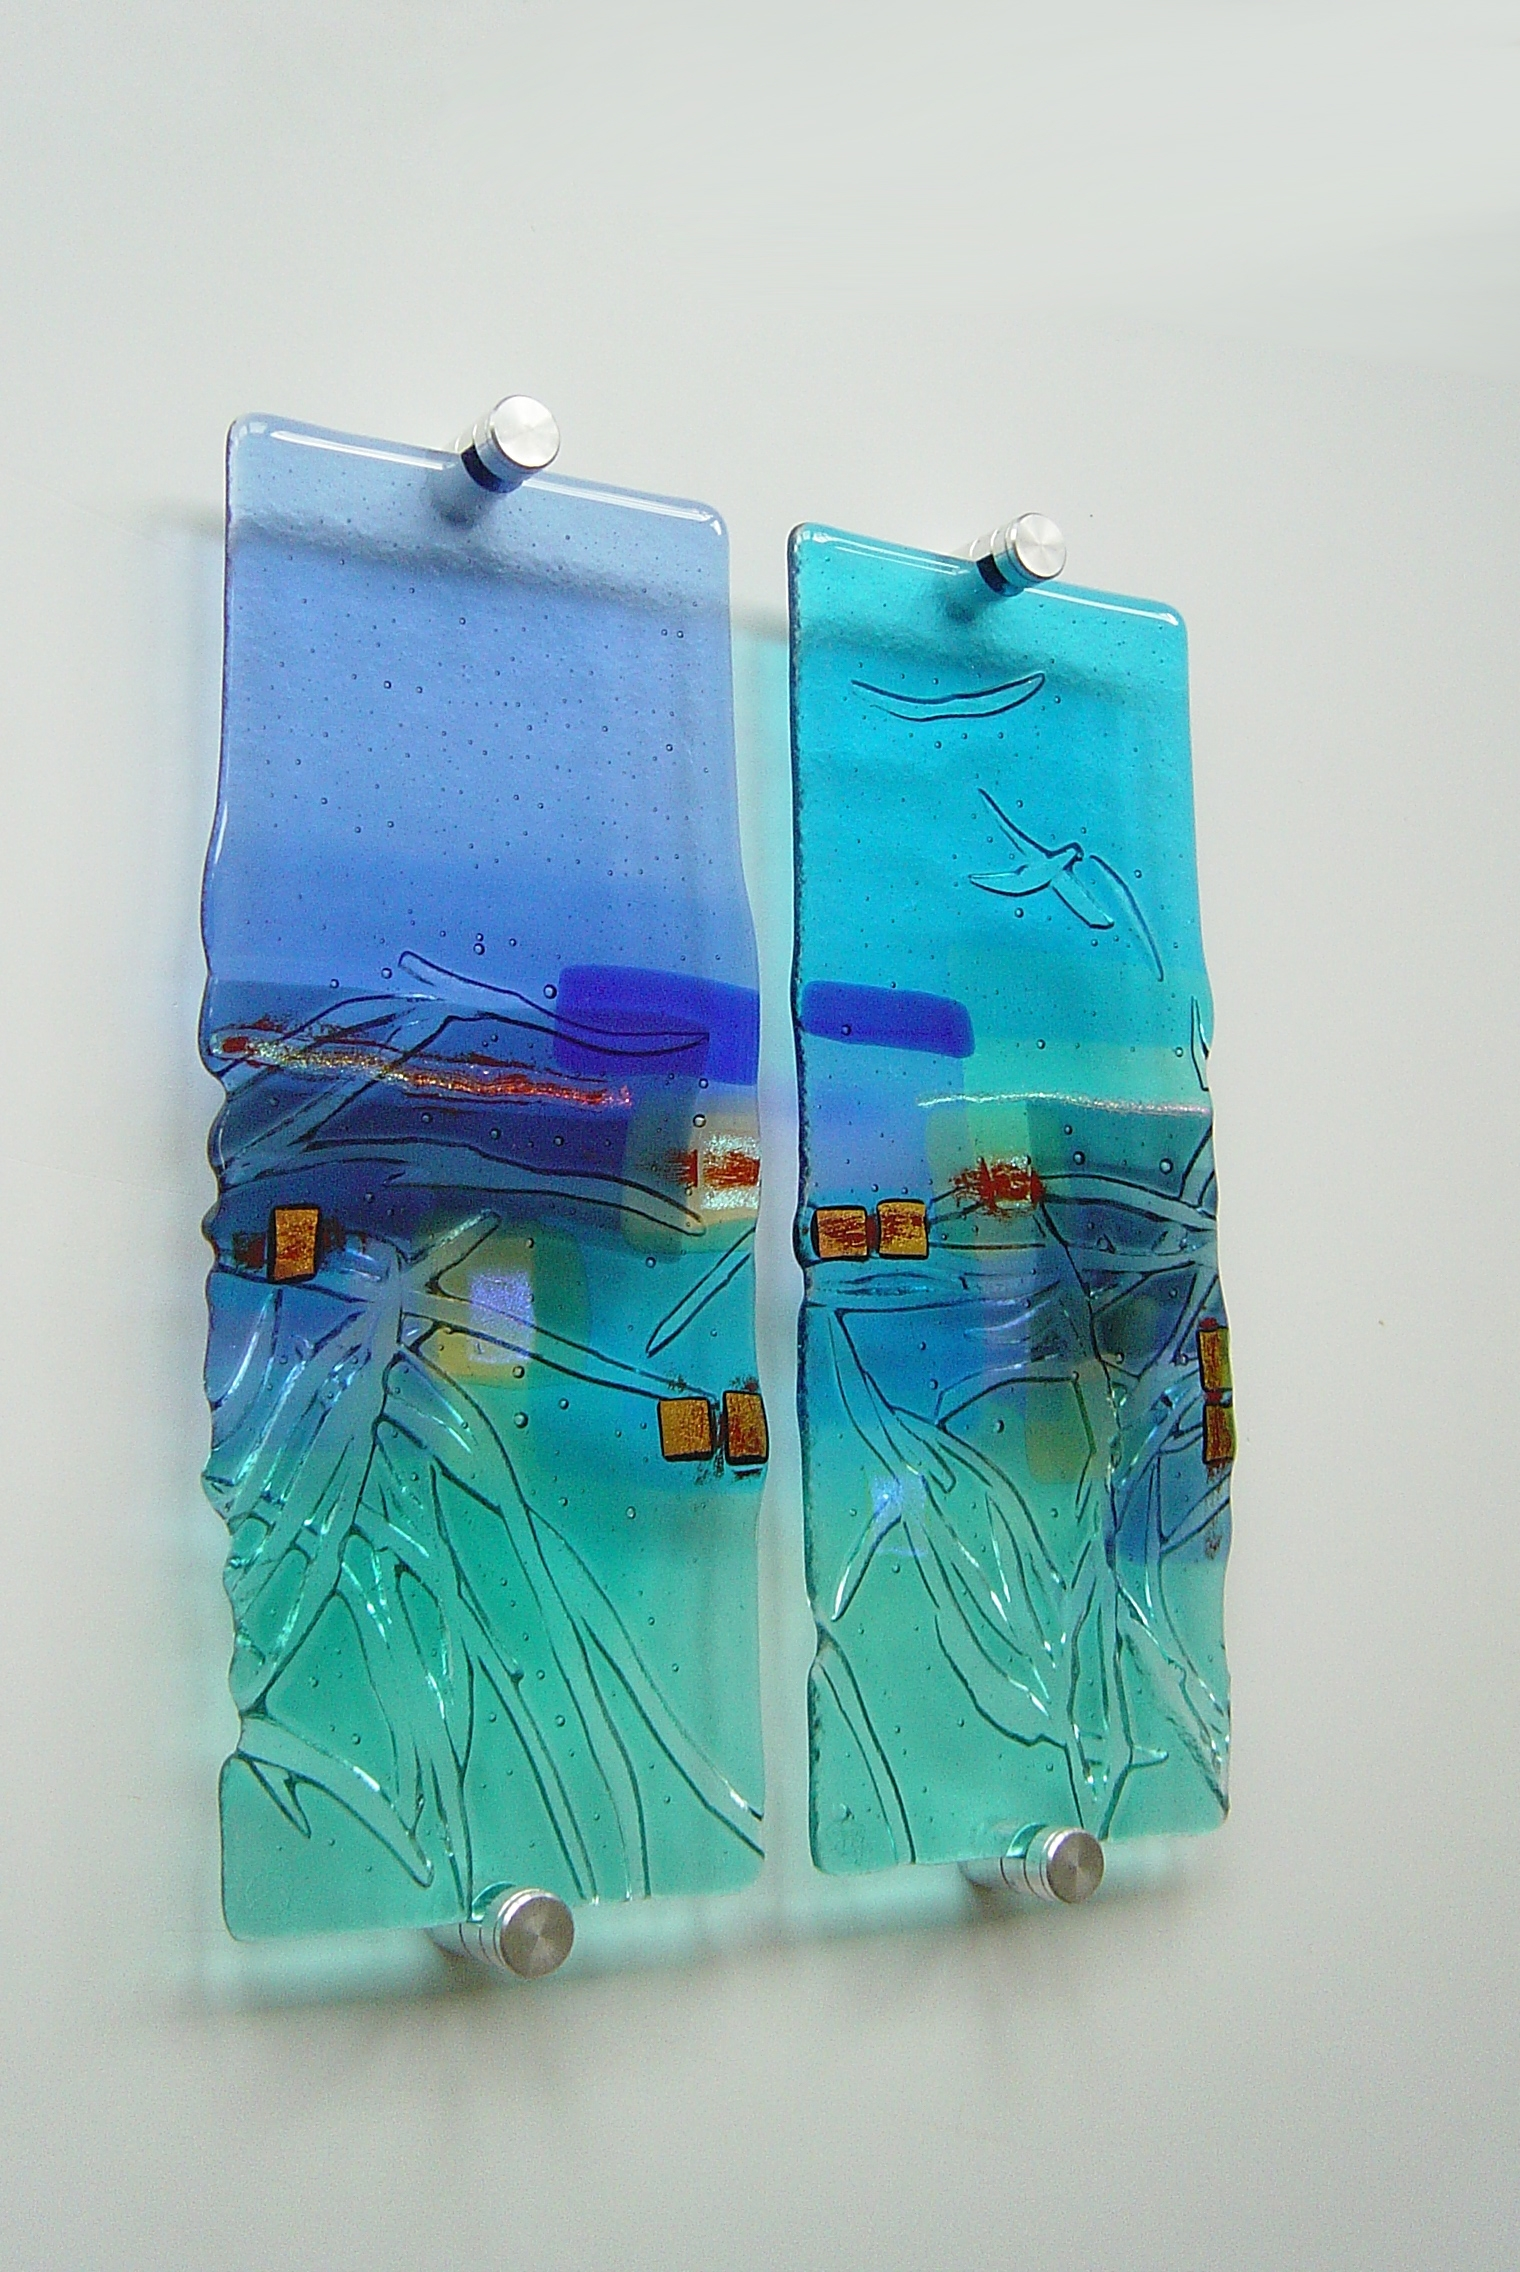 Tapestry Land' Kiln Formed Glass Panelswww.kimbramley.co (View 15 of 15)